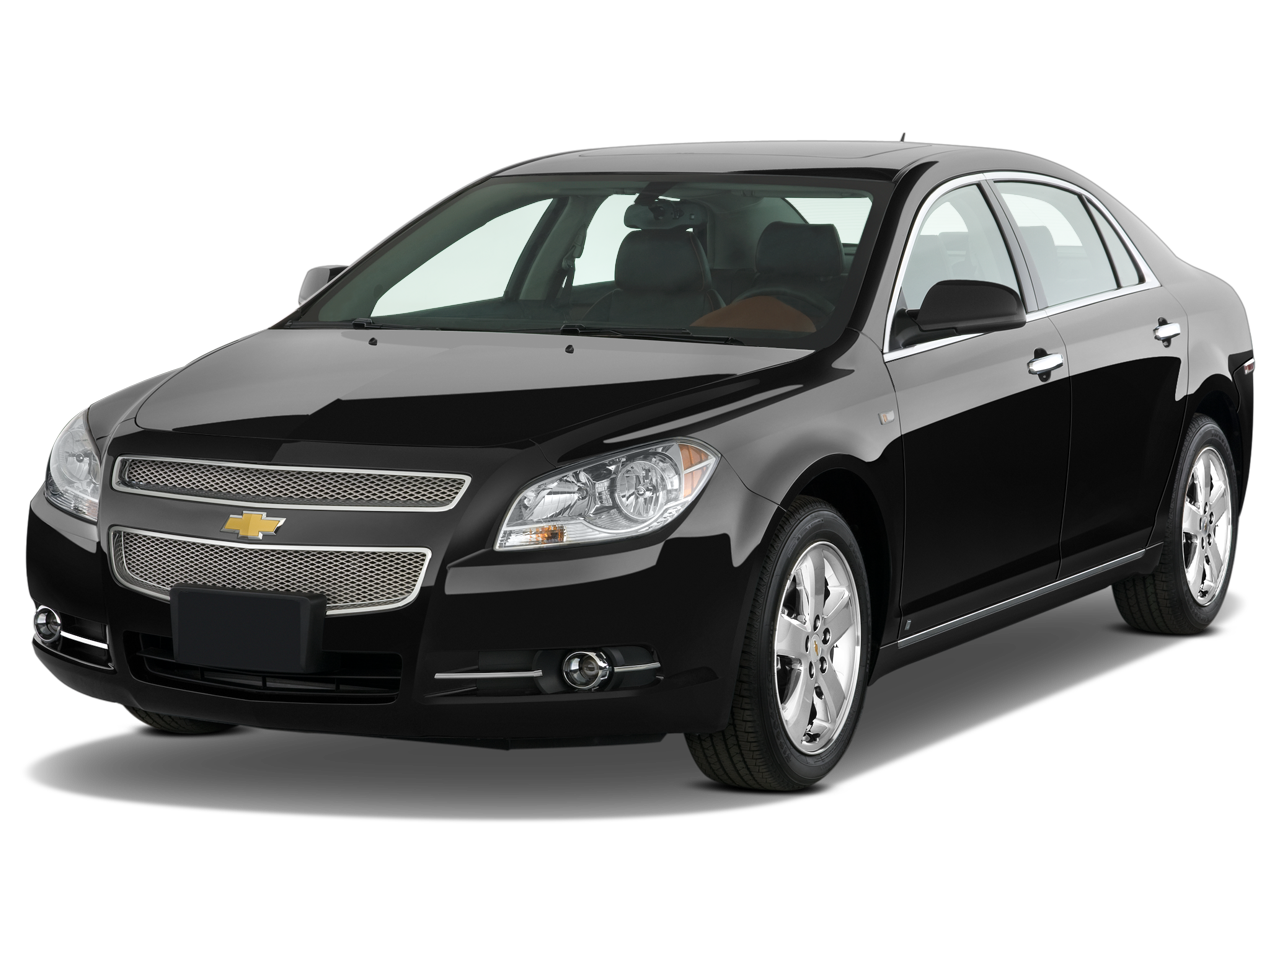 2009 chevy malibu ltz fuel efficient news car features and reviews automobile magazine. Black Bedroom Furniture Sets. Home Design Ideas